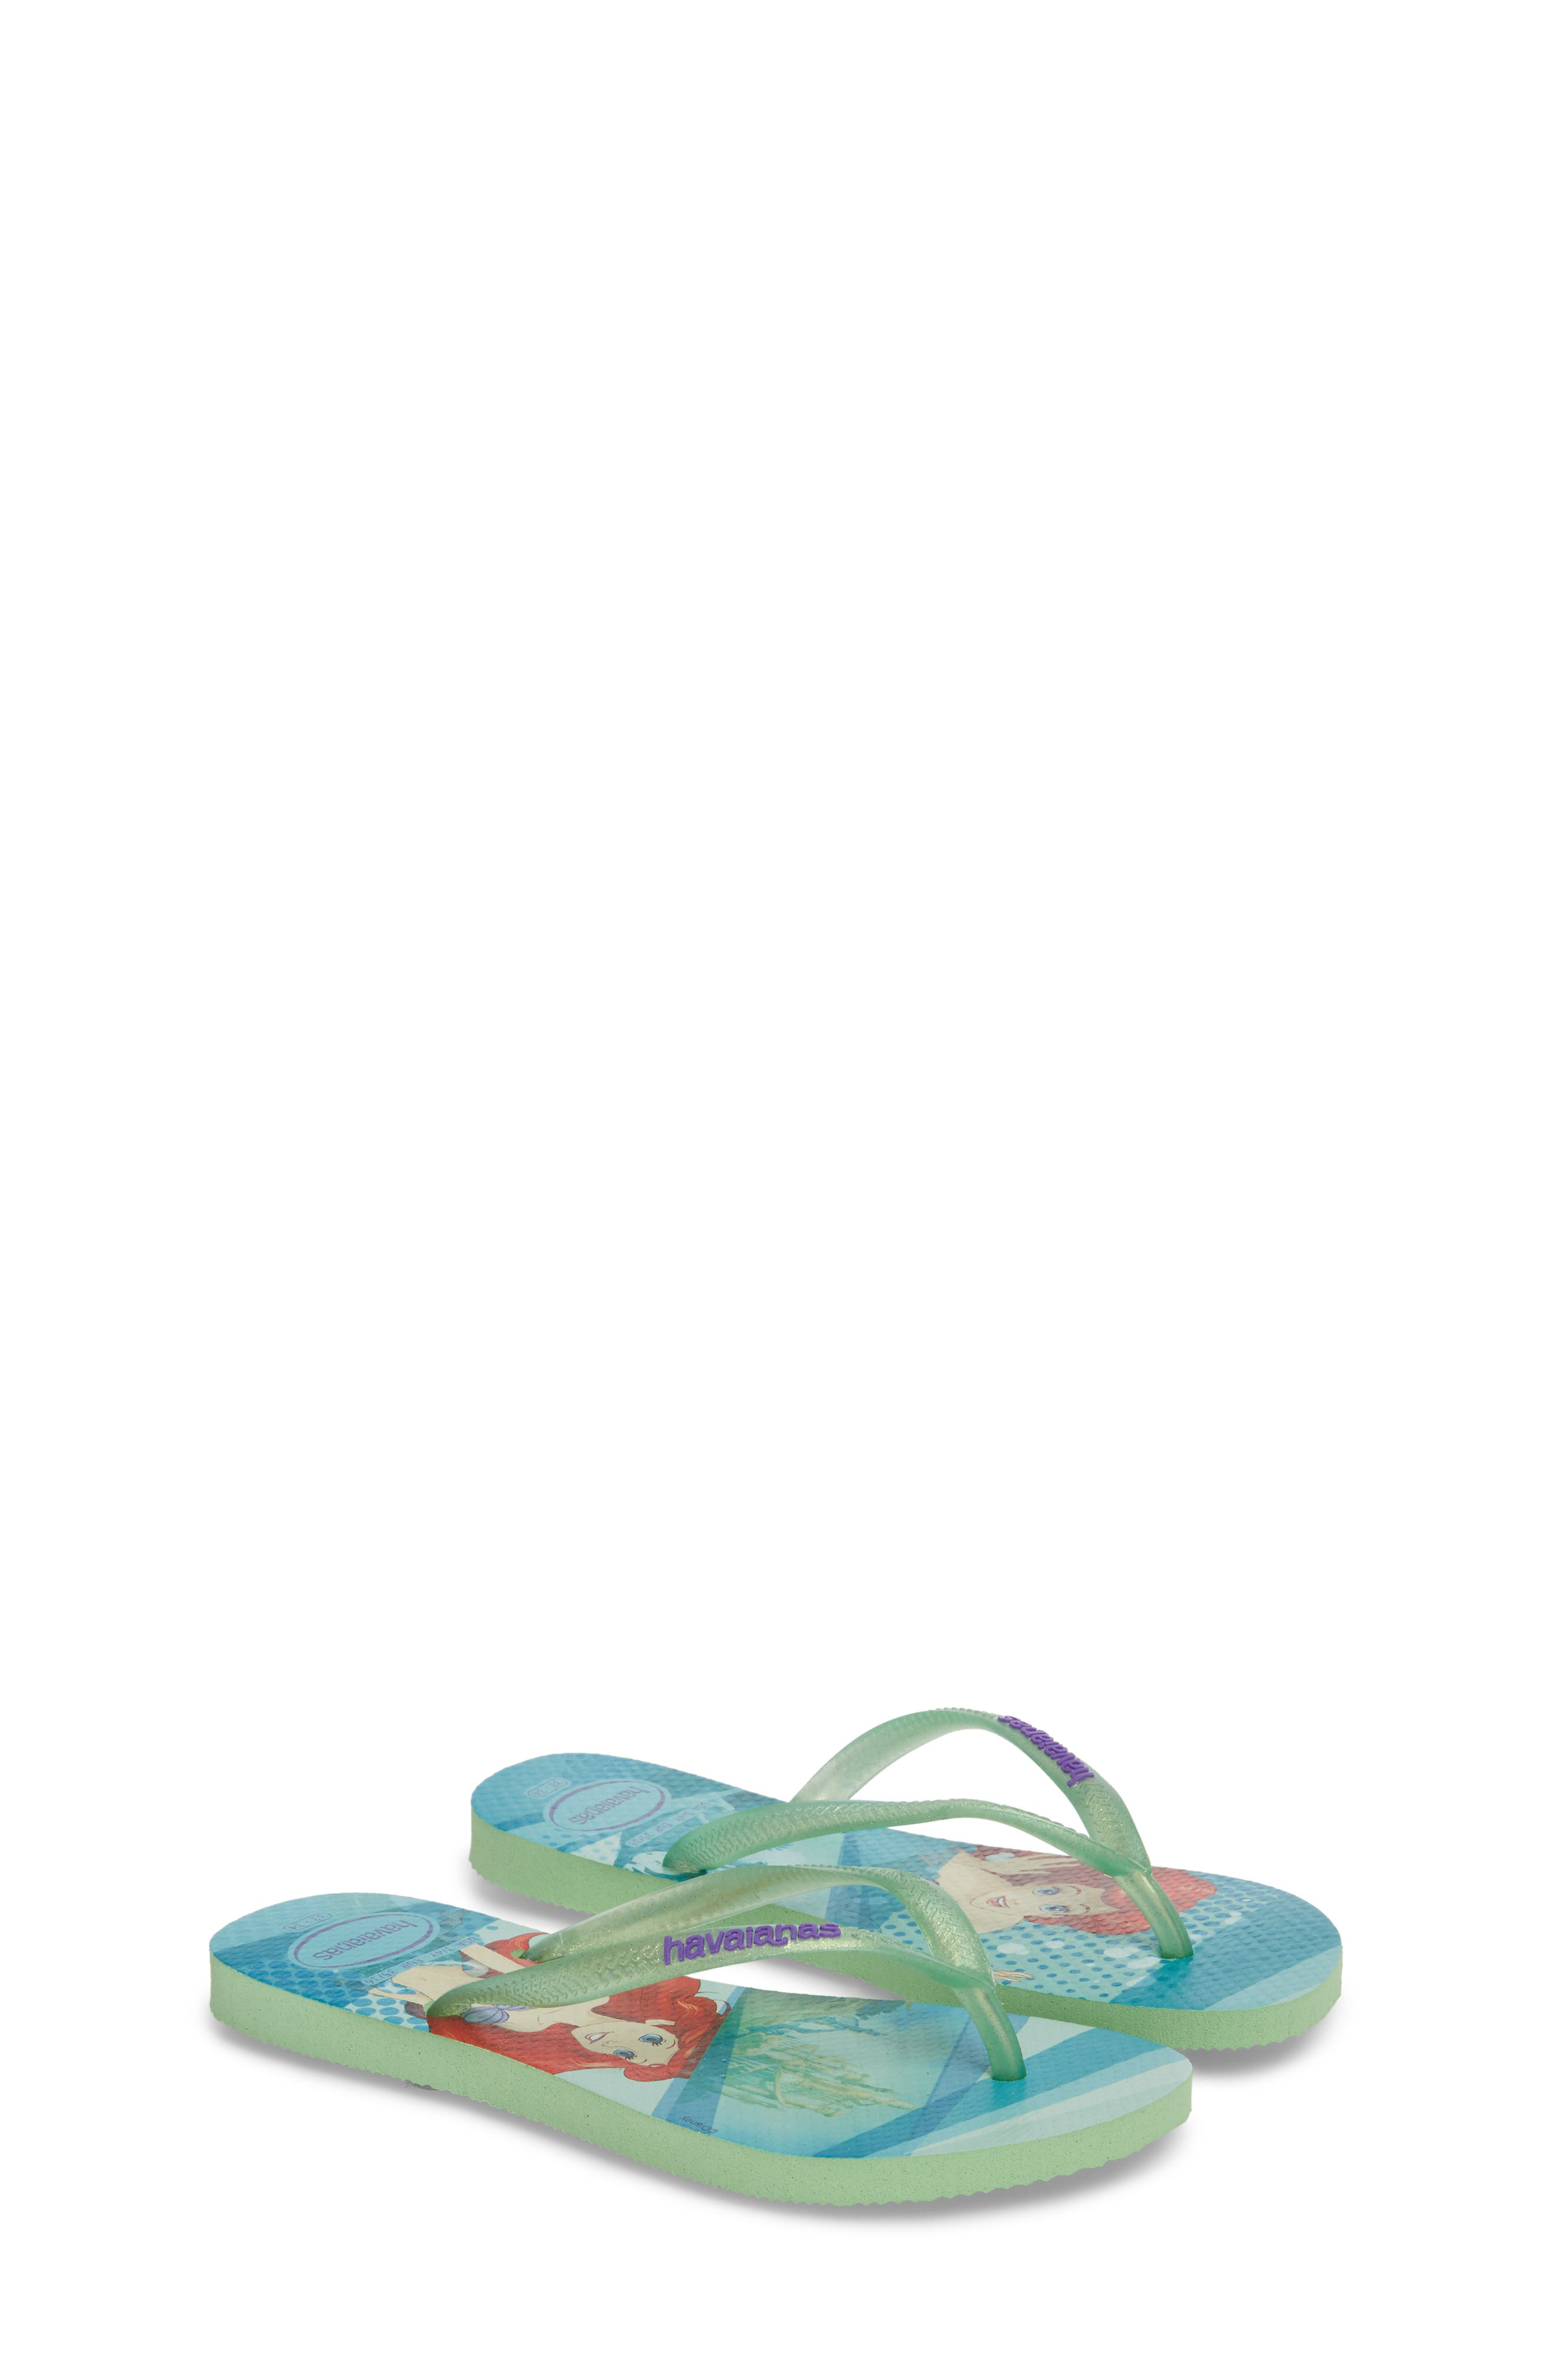 'Disney Princess' Flip Flops,                             Alternate thumbnail 2, color,                             301